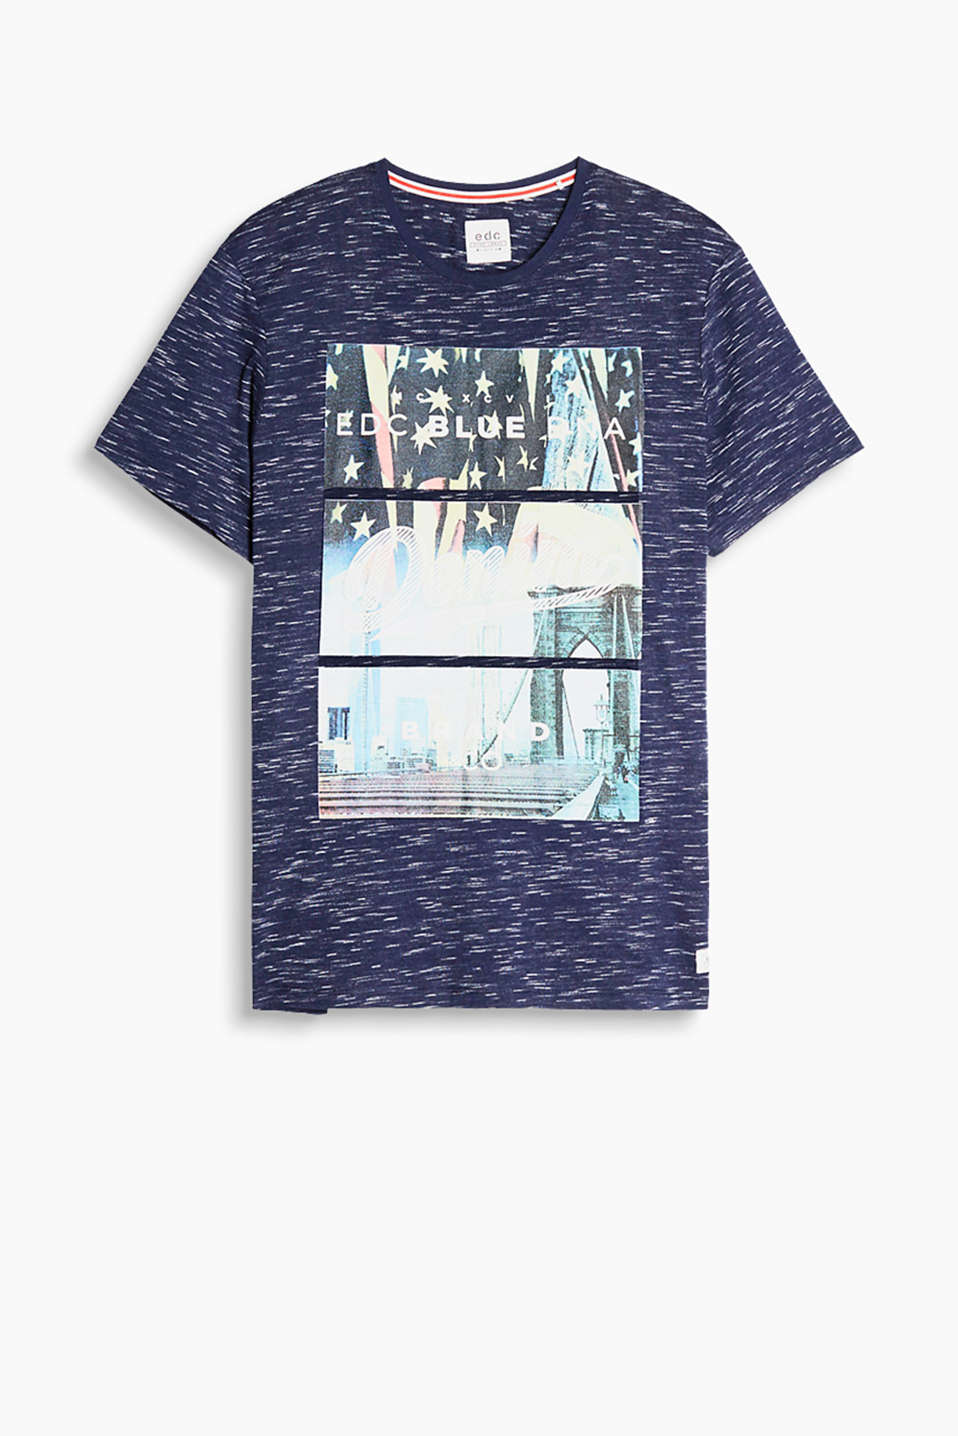 In 100% cotone: t-shirt con stampa city